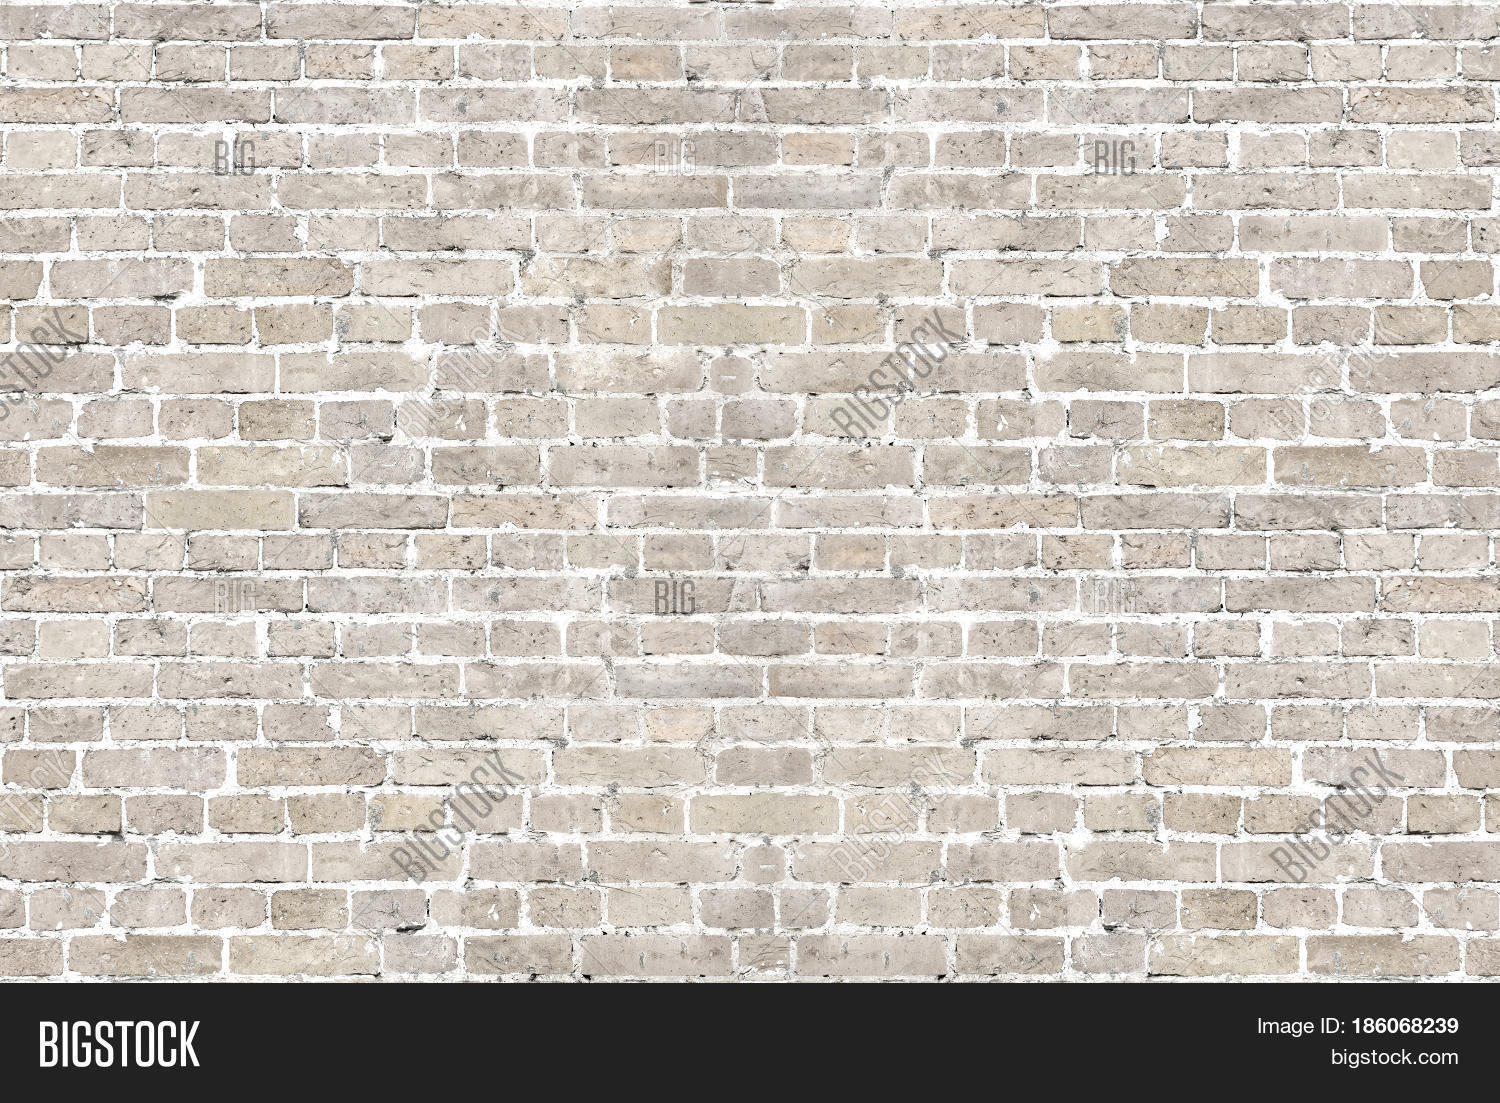 Vintage whitewashed brick wall horizontal background texture. Home and  office design backdrop in modern style